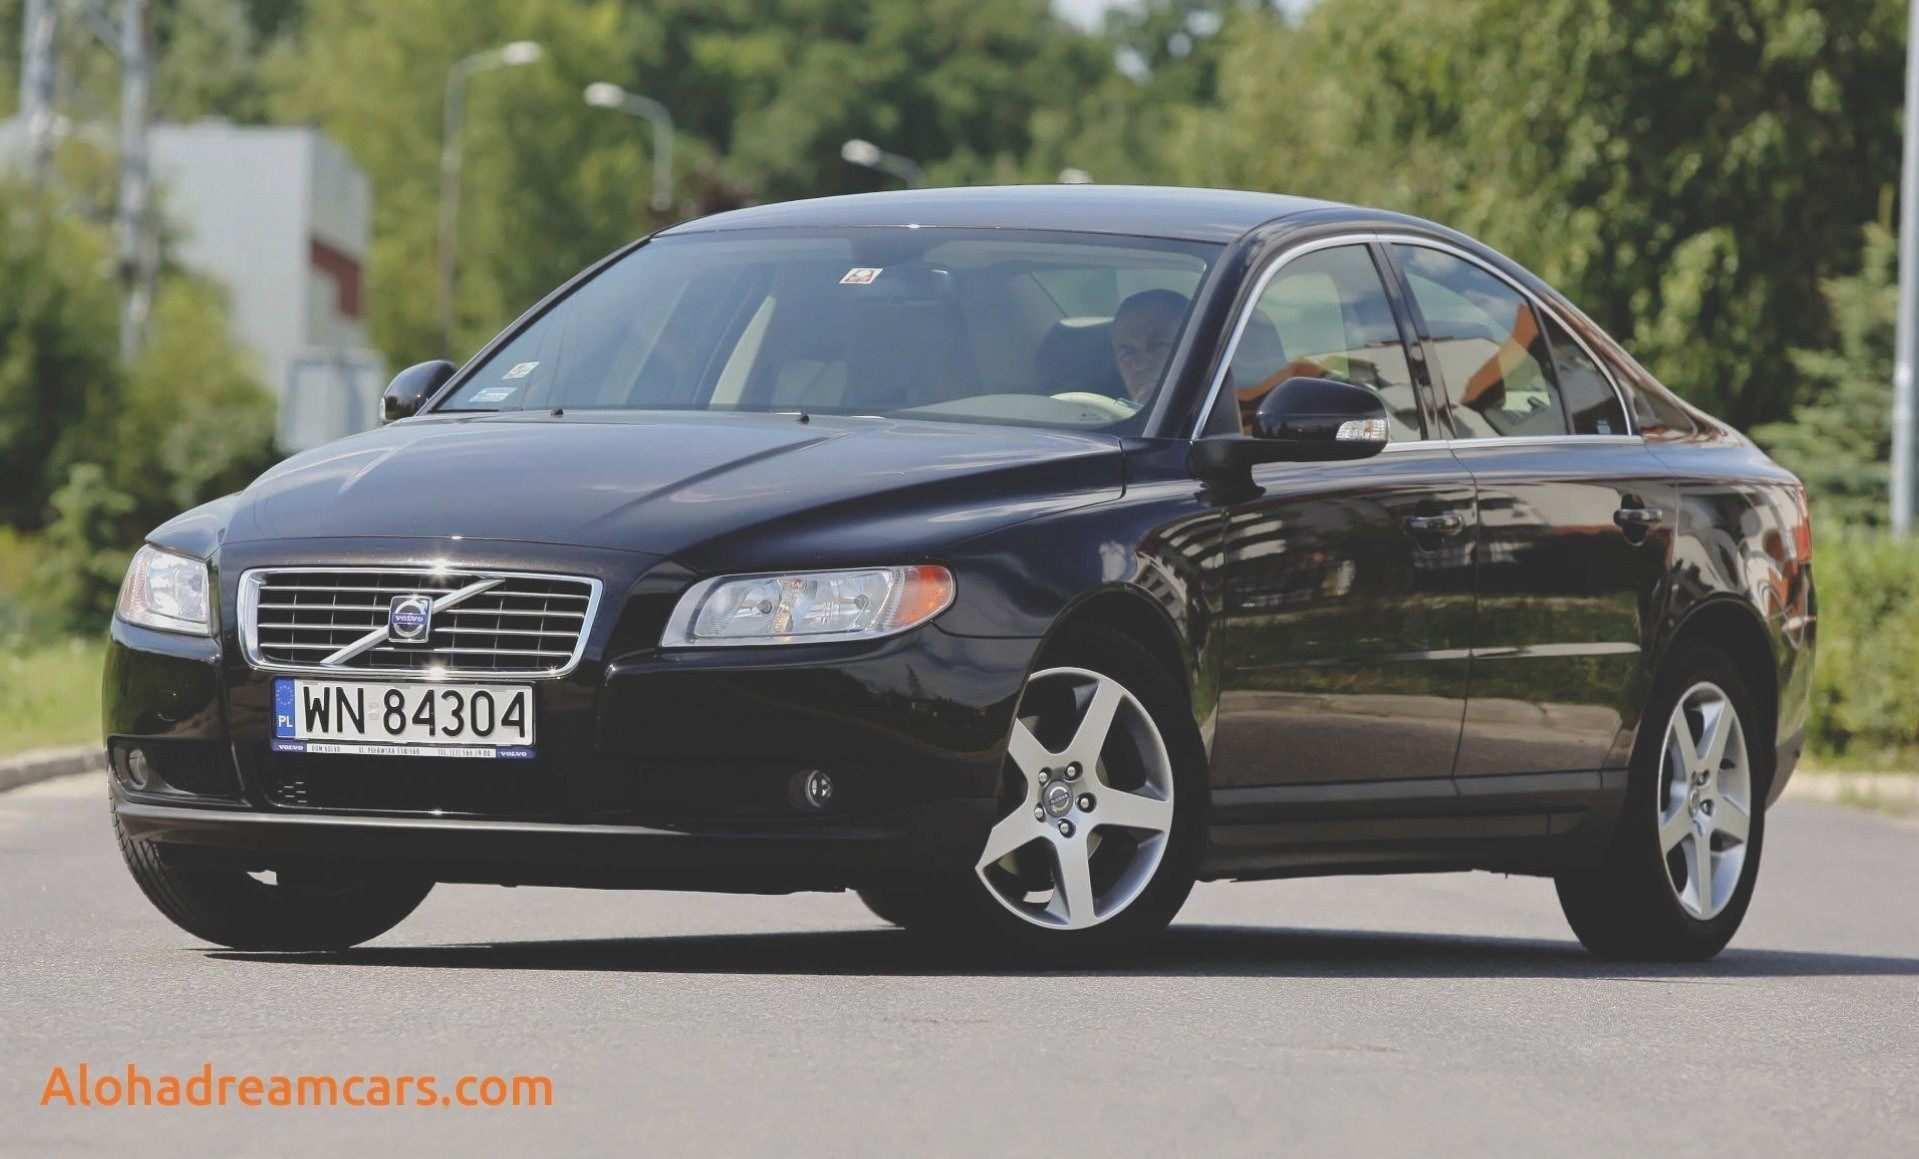 26 Best 2020 Volvo S80 Images